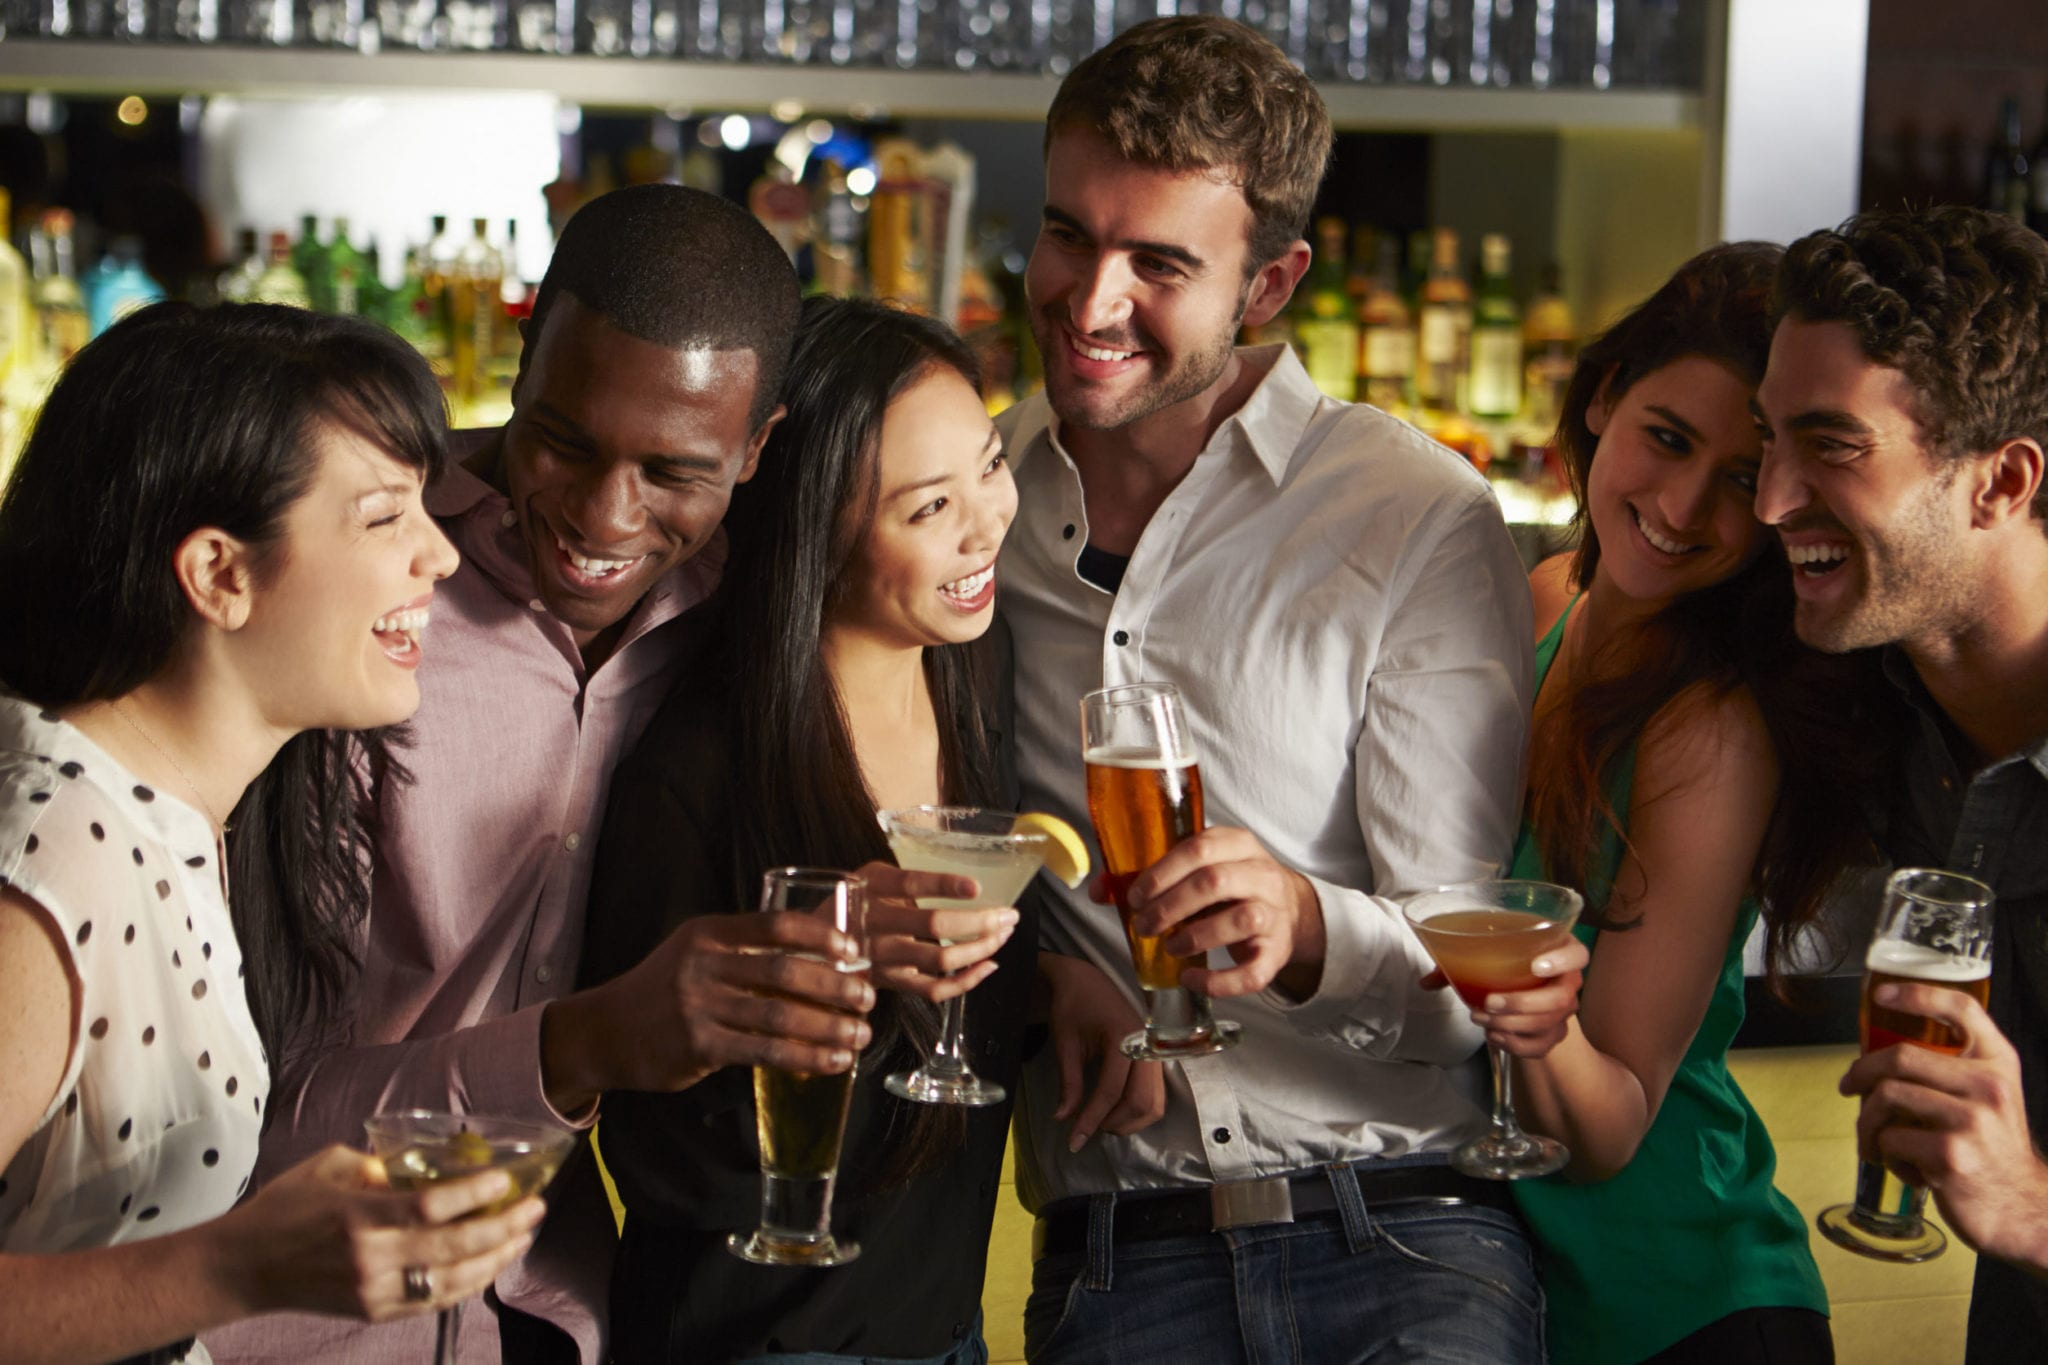 Charged with Intoxication Assault in Texas? Here are Your Next Steps